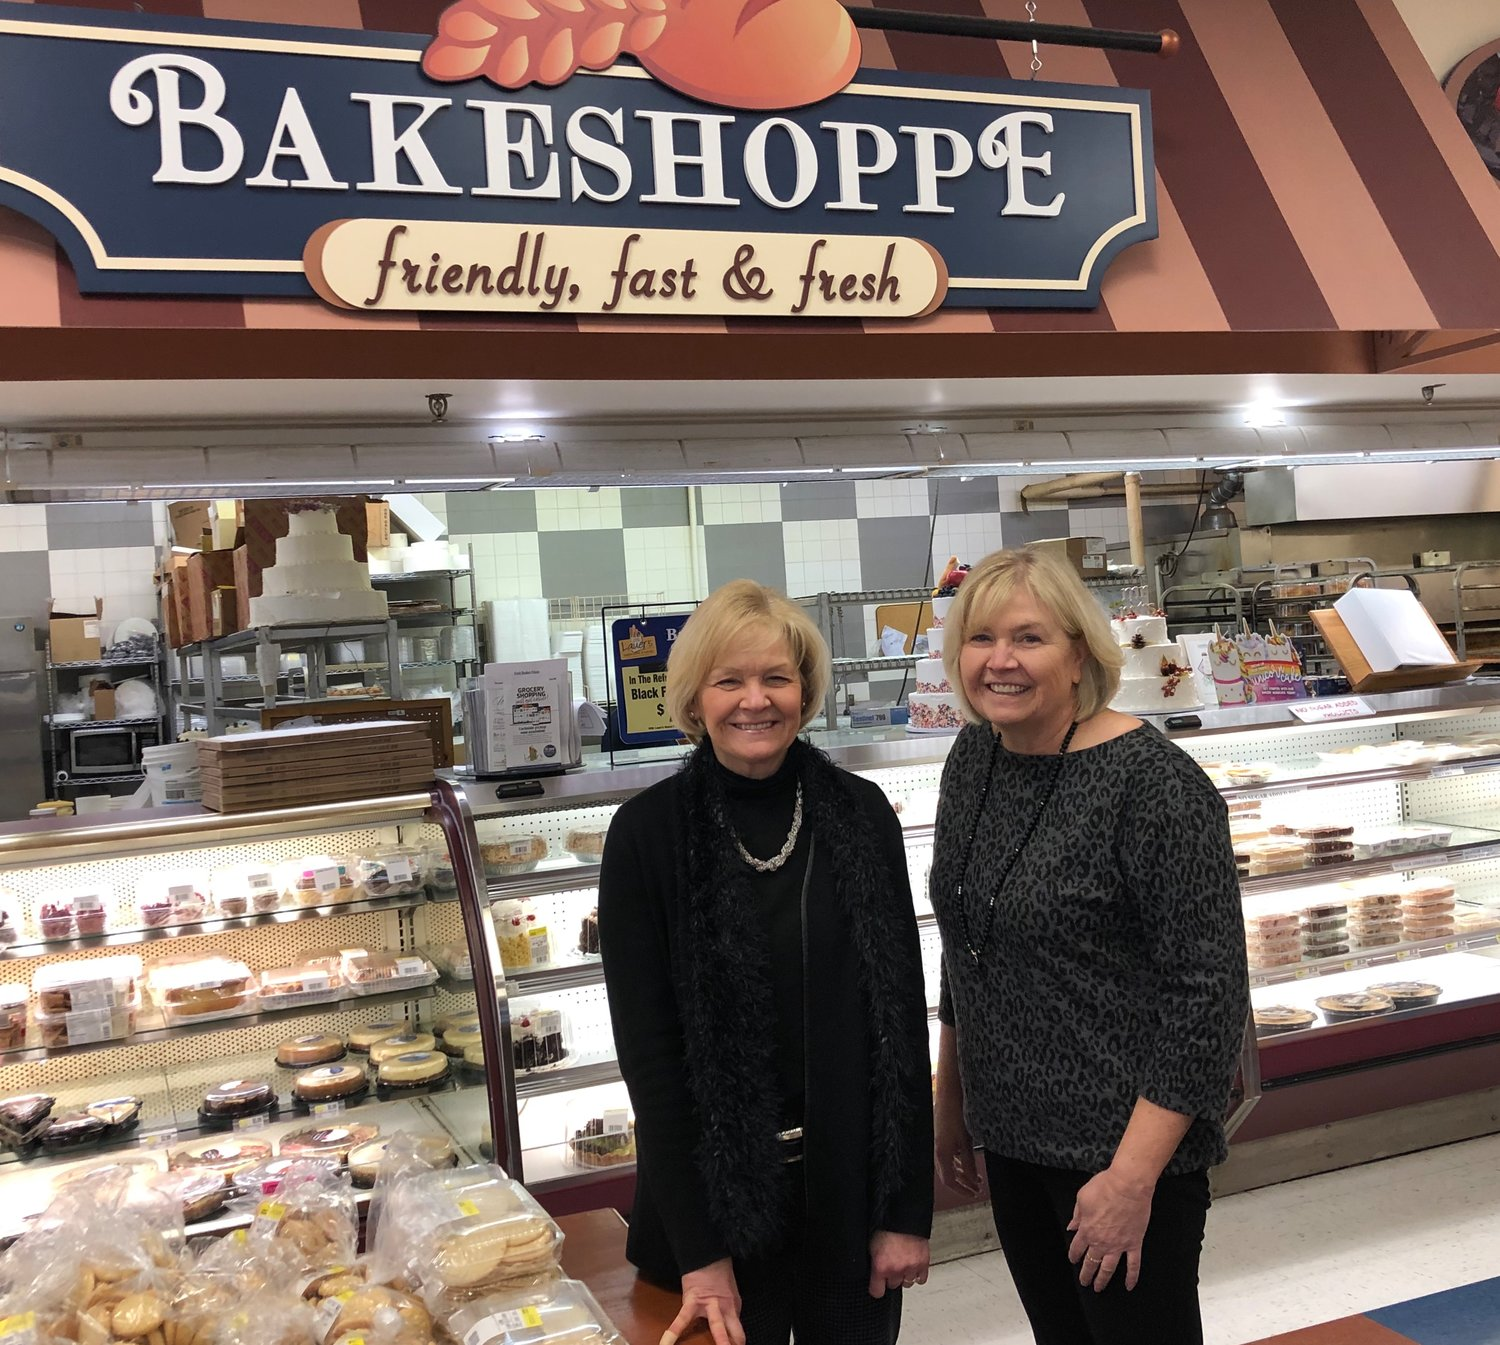 Bernie Snoops (left) and Babie Poyer purchased Lauer's Supermarket & Bakery from their parents in 2006, though they had been running the business since the late '90s. Together they build on the traditions of their parents to keep their focus squarely on the customer.